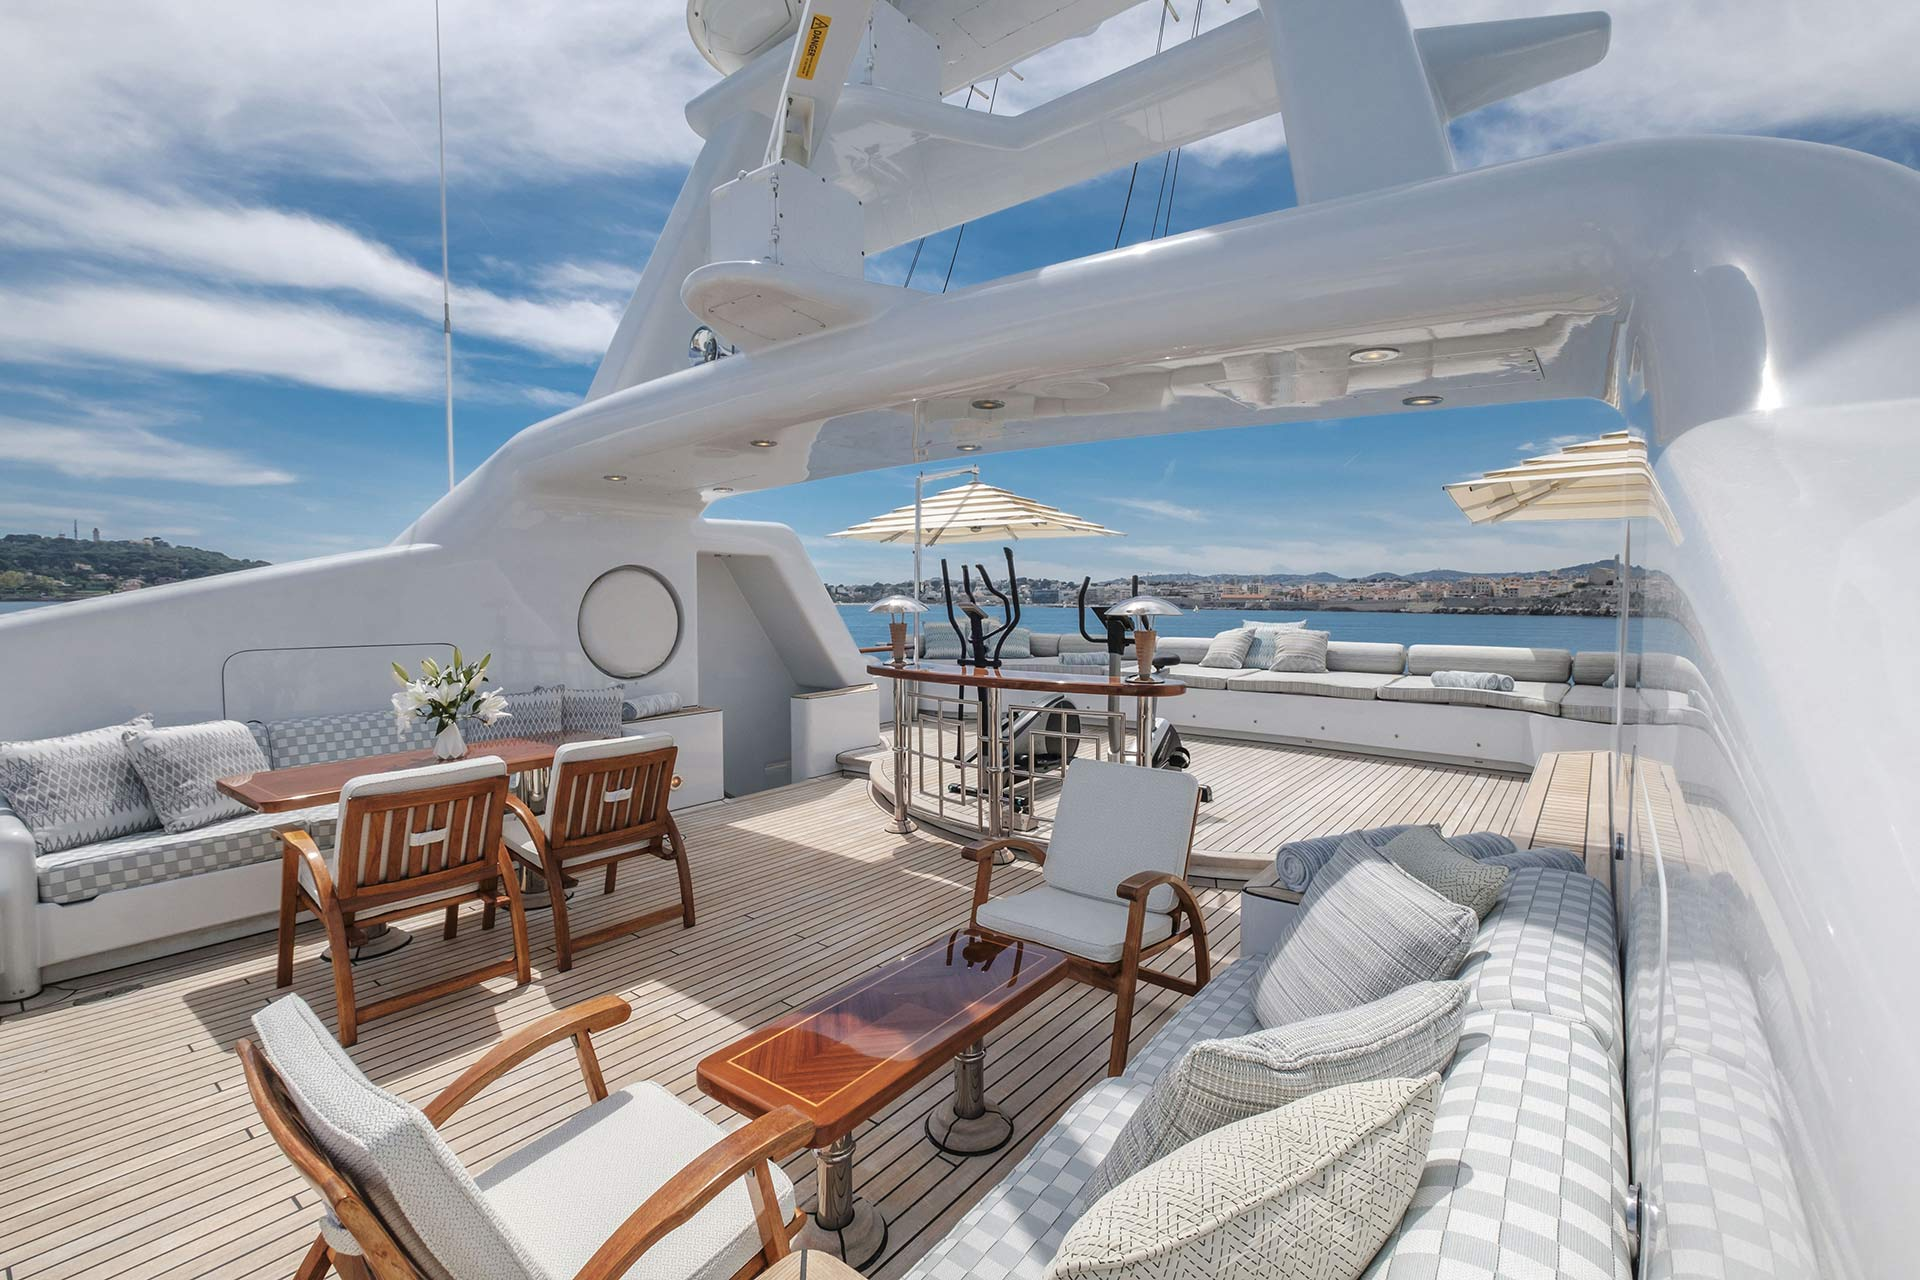 Mosaique-Motor-Yacht-for-charter-gallery-04.jpg